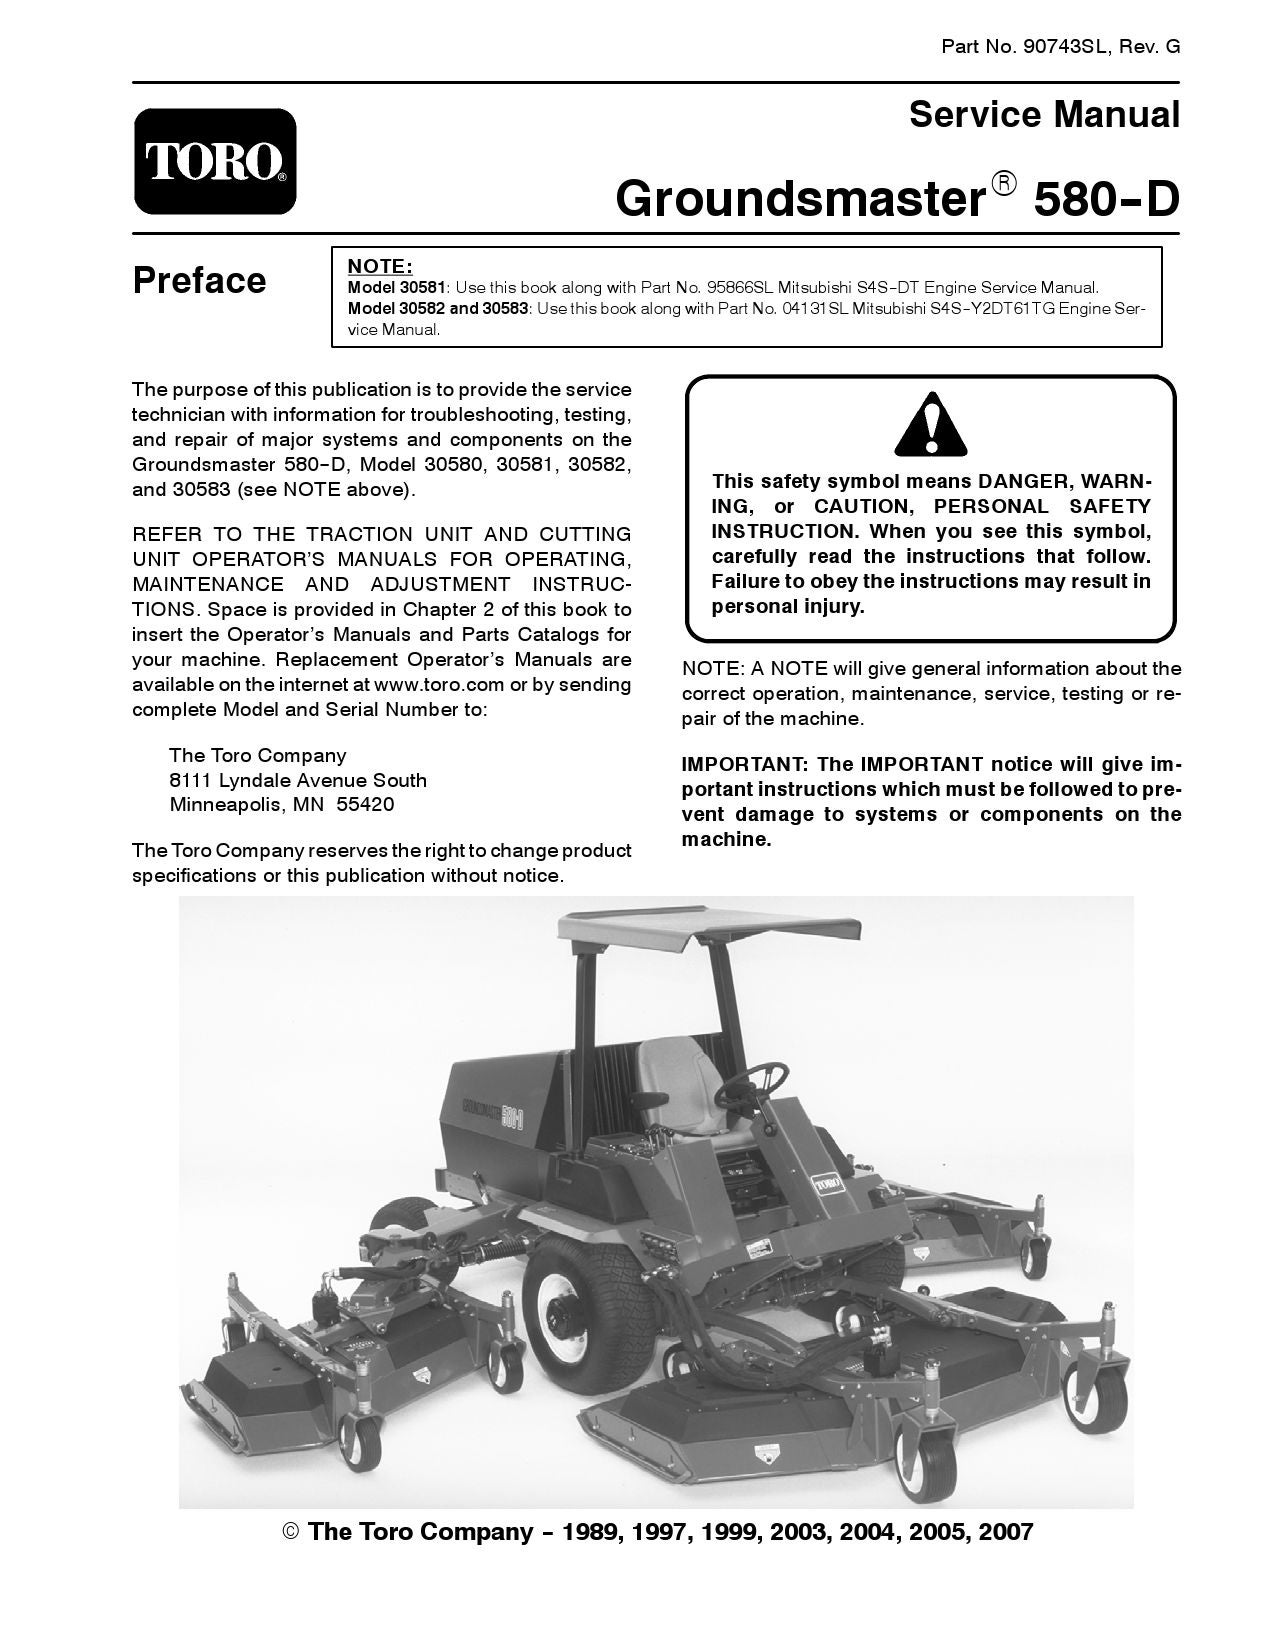 hight resolution of 90743sl pdf groundsmaster 580 d rev g dec 2007 by negimachi negimachi issuu